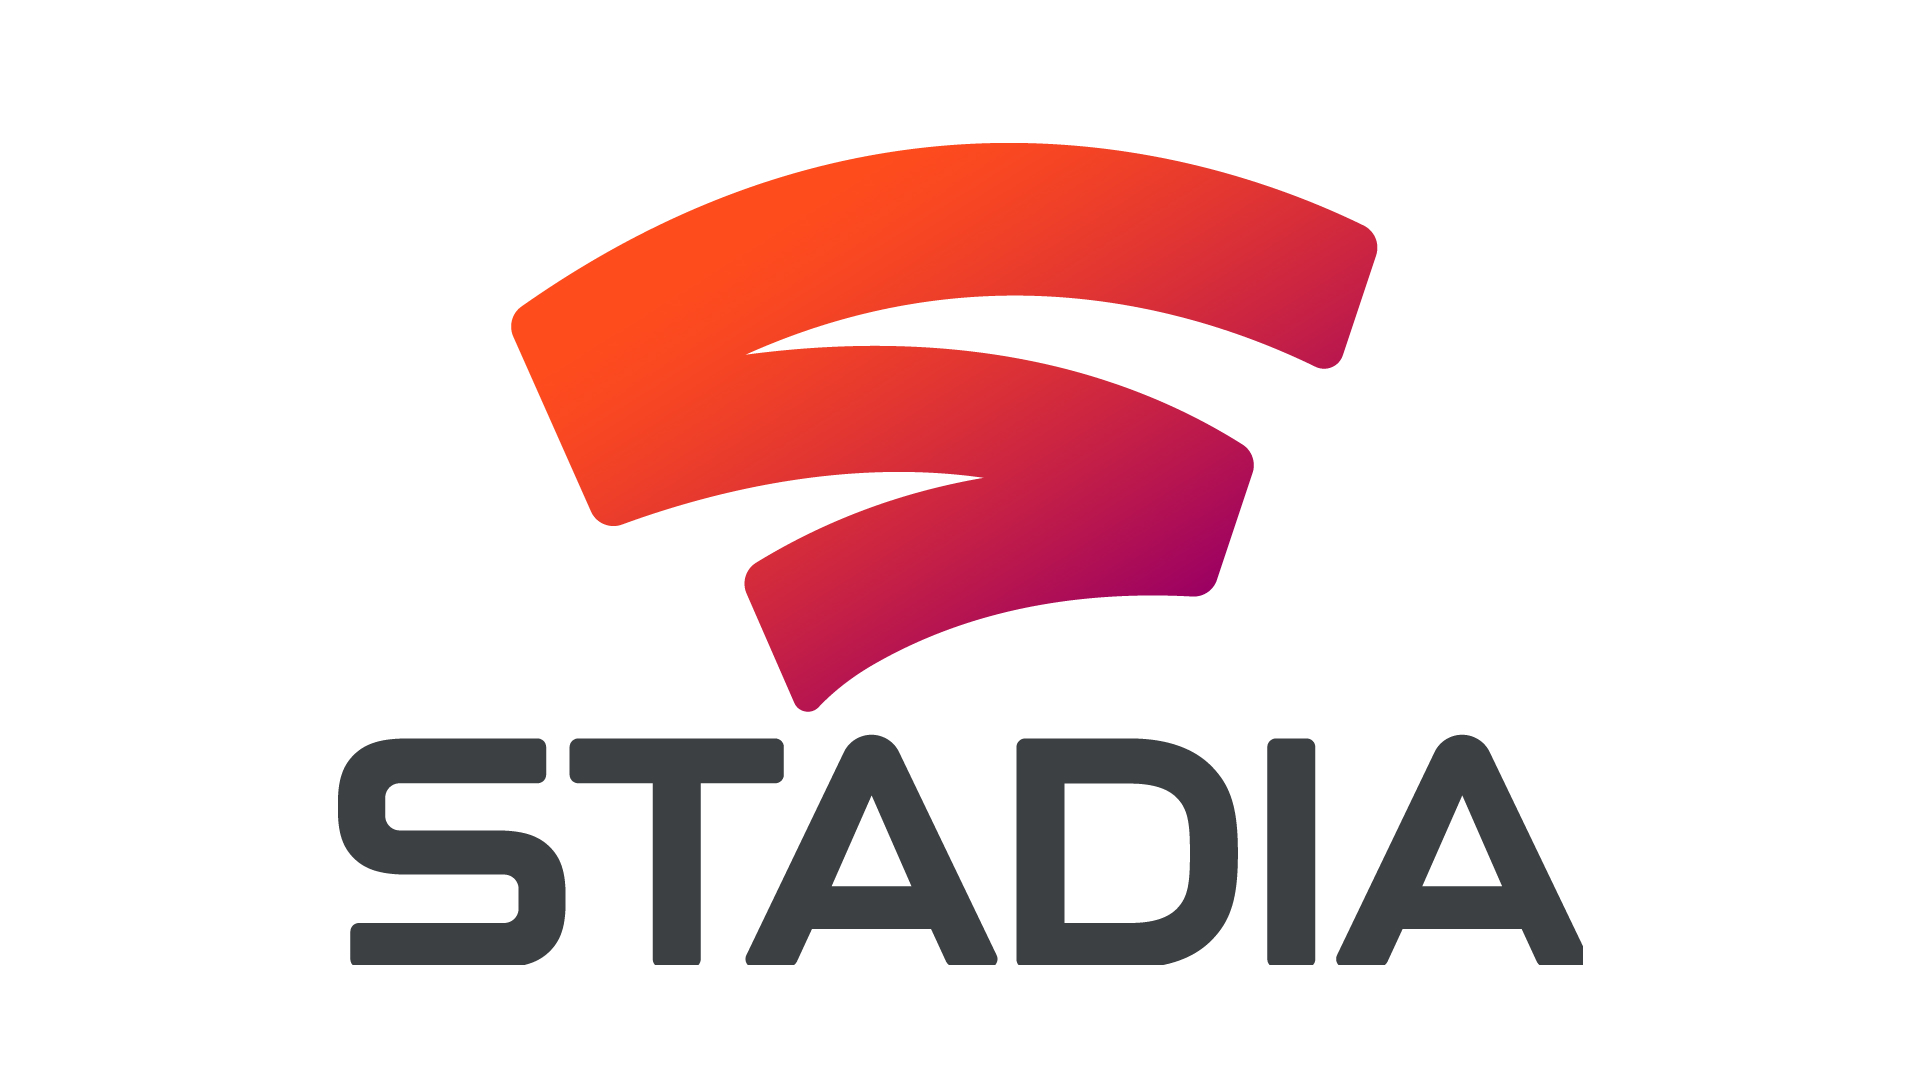 Google Stadia Requires 35 Mbps Bandwidth for 4K HDR/60 FPS